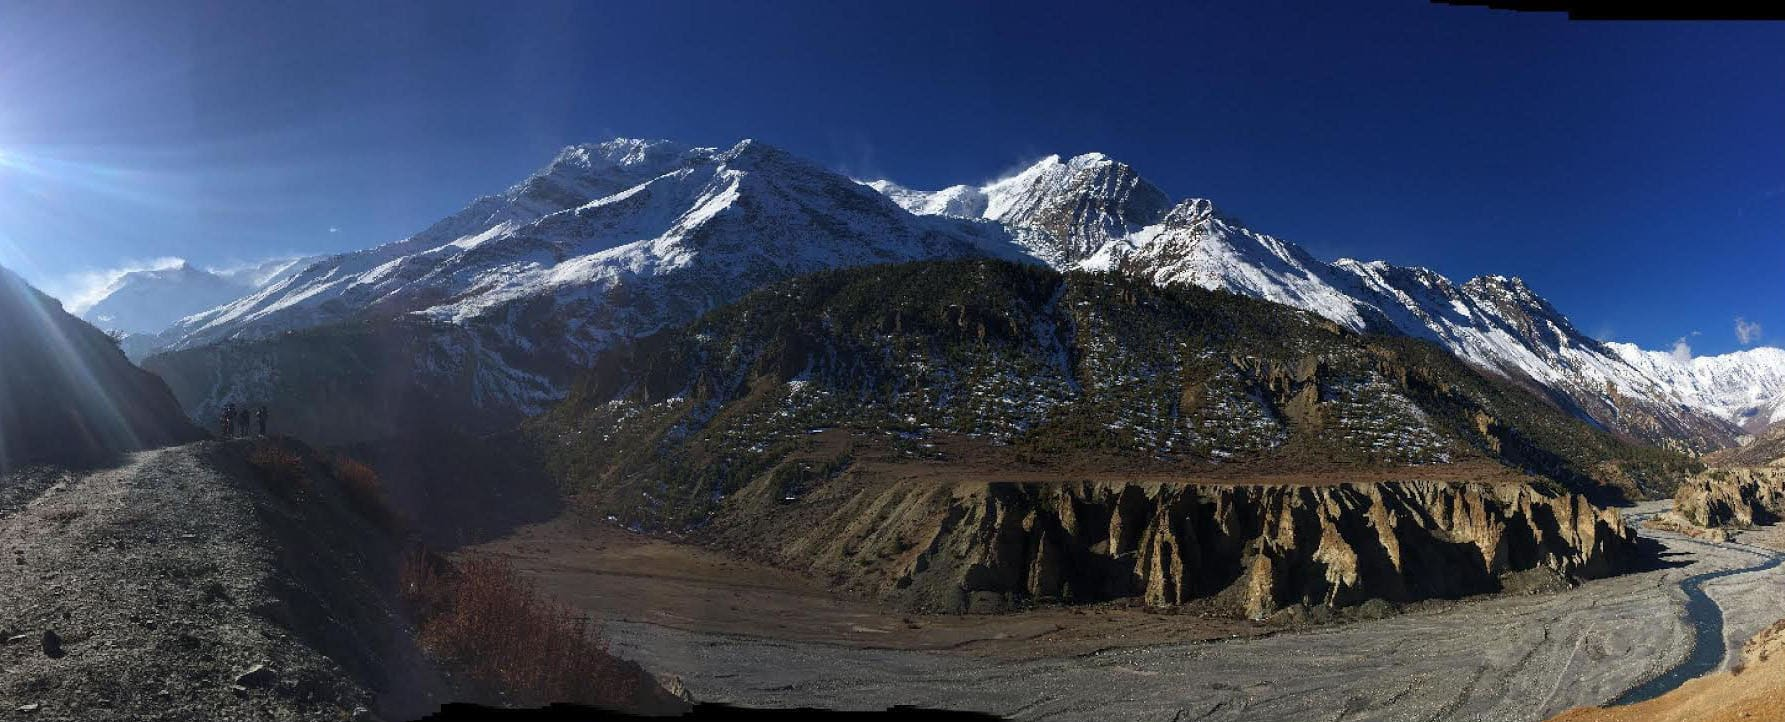 19-day Annapurna trek in the Himalayas